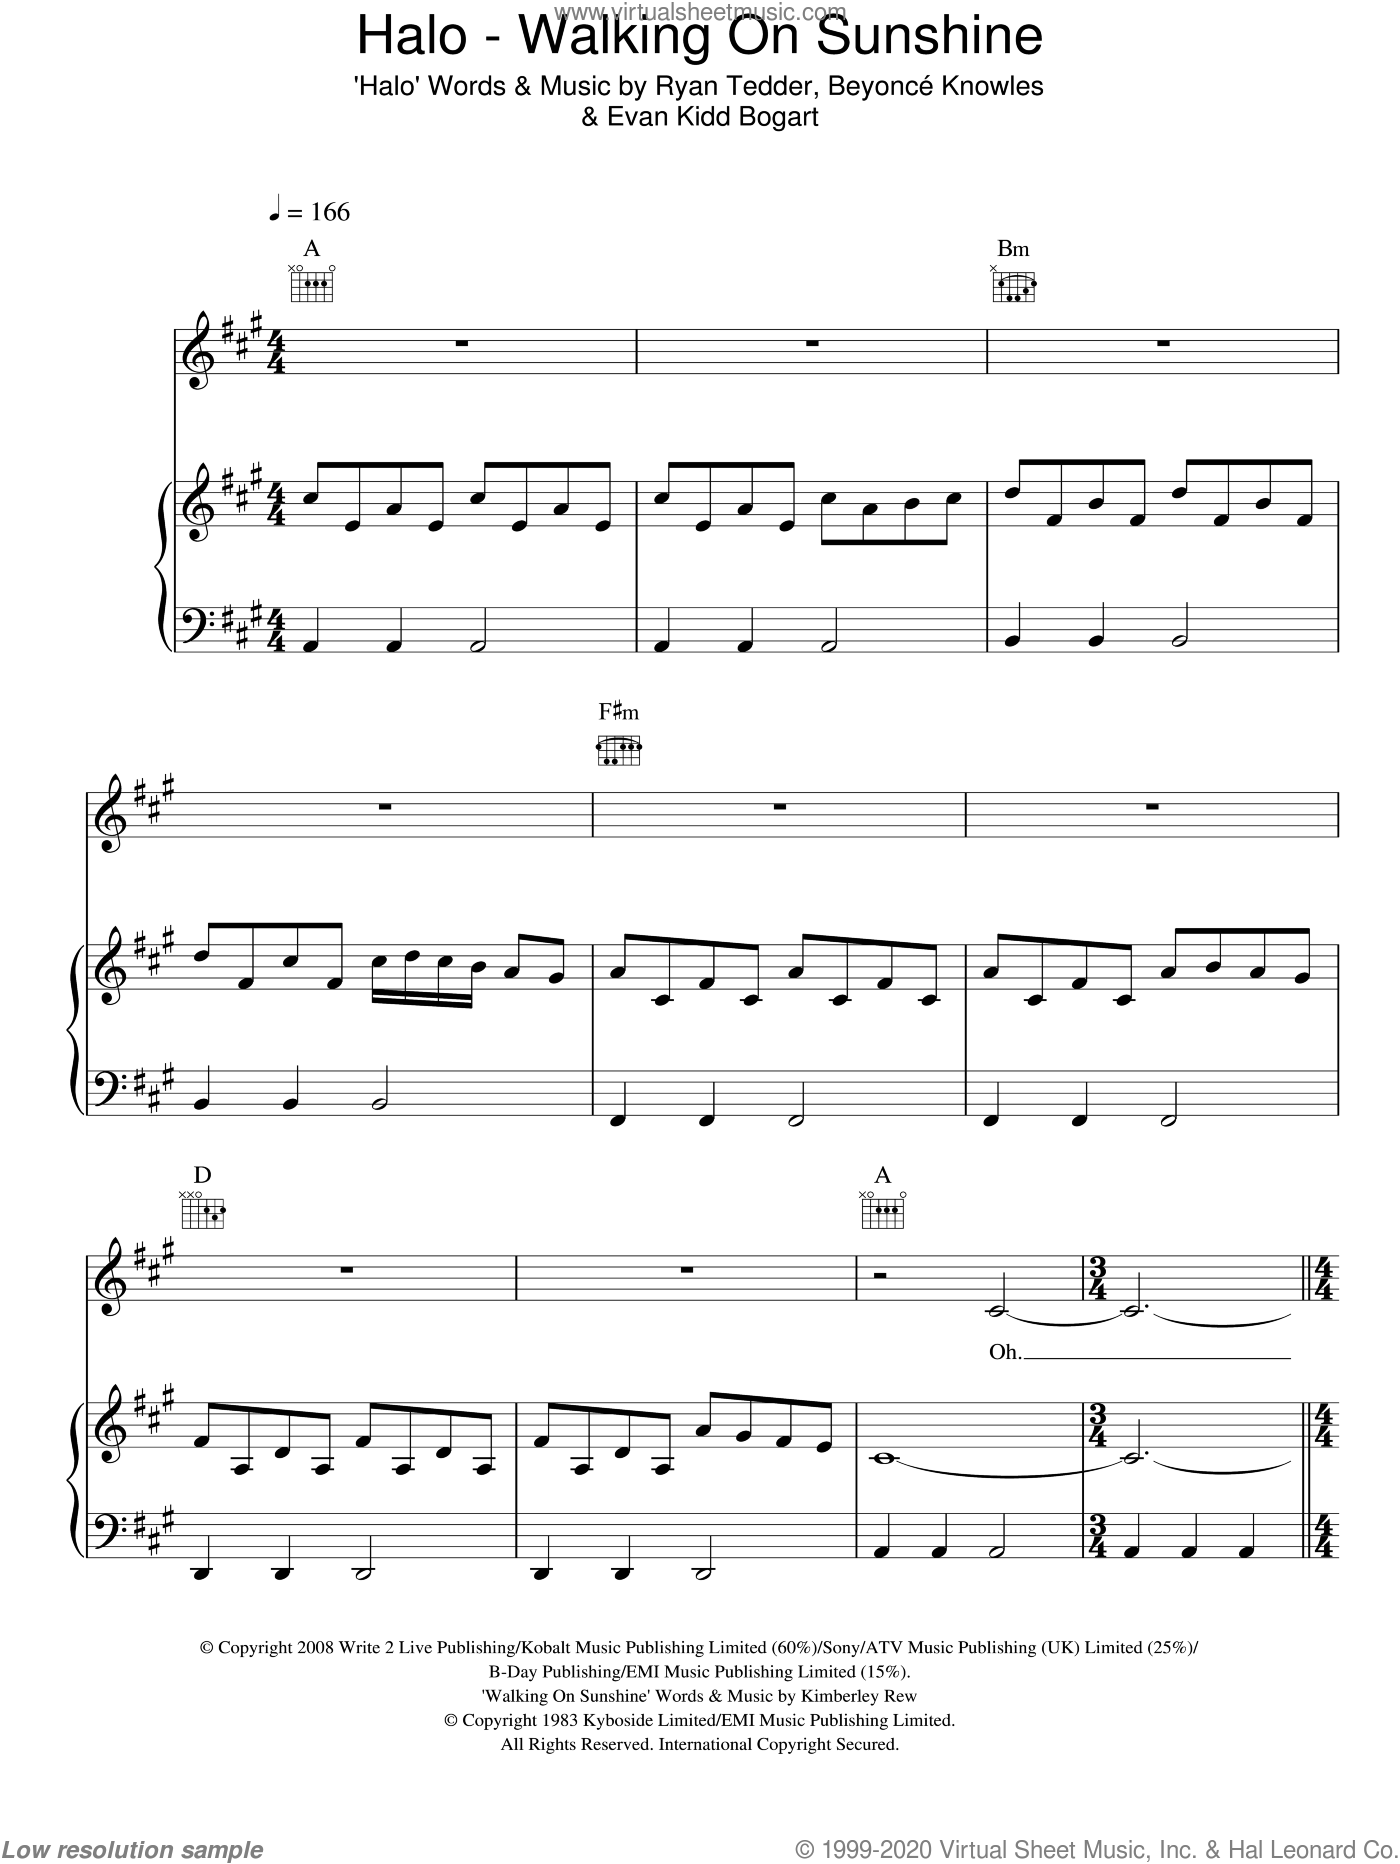 Halo / Walking On Sunshine sheet music for voice, piano or guitar by Beyonce, Glee Cast, Miscellaneous, Evan Kidd Bogart, Kimberley Rew and Ryan Tedder, intermediate skill level